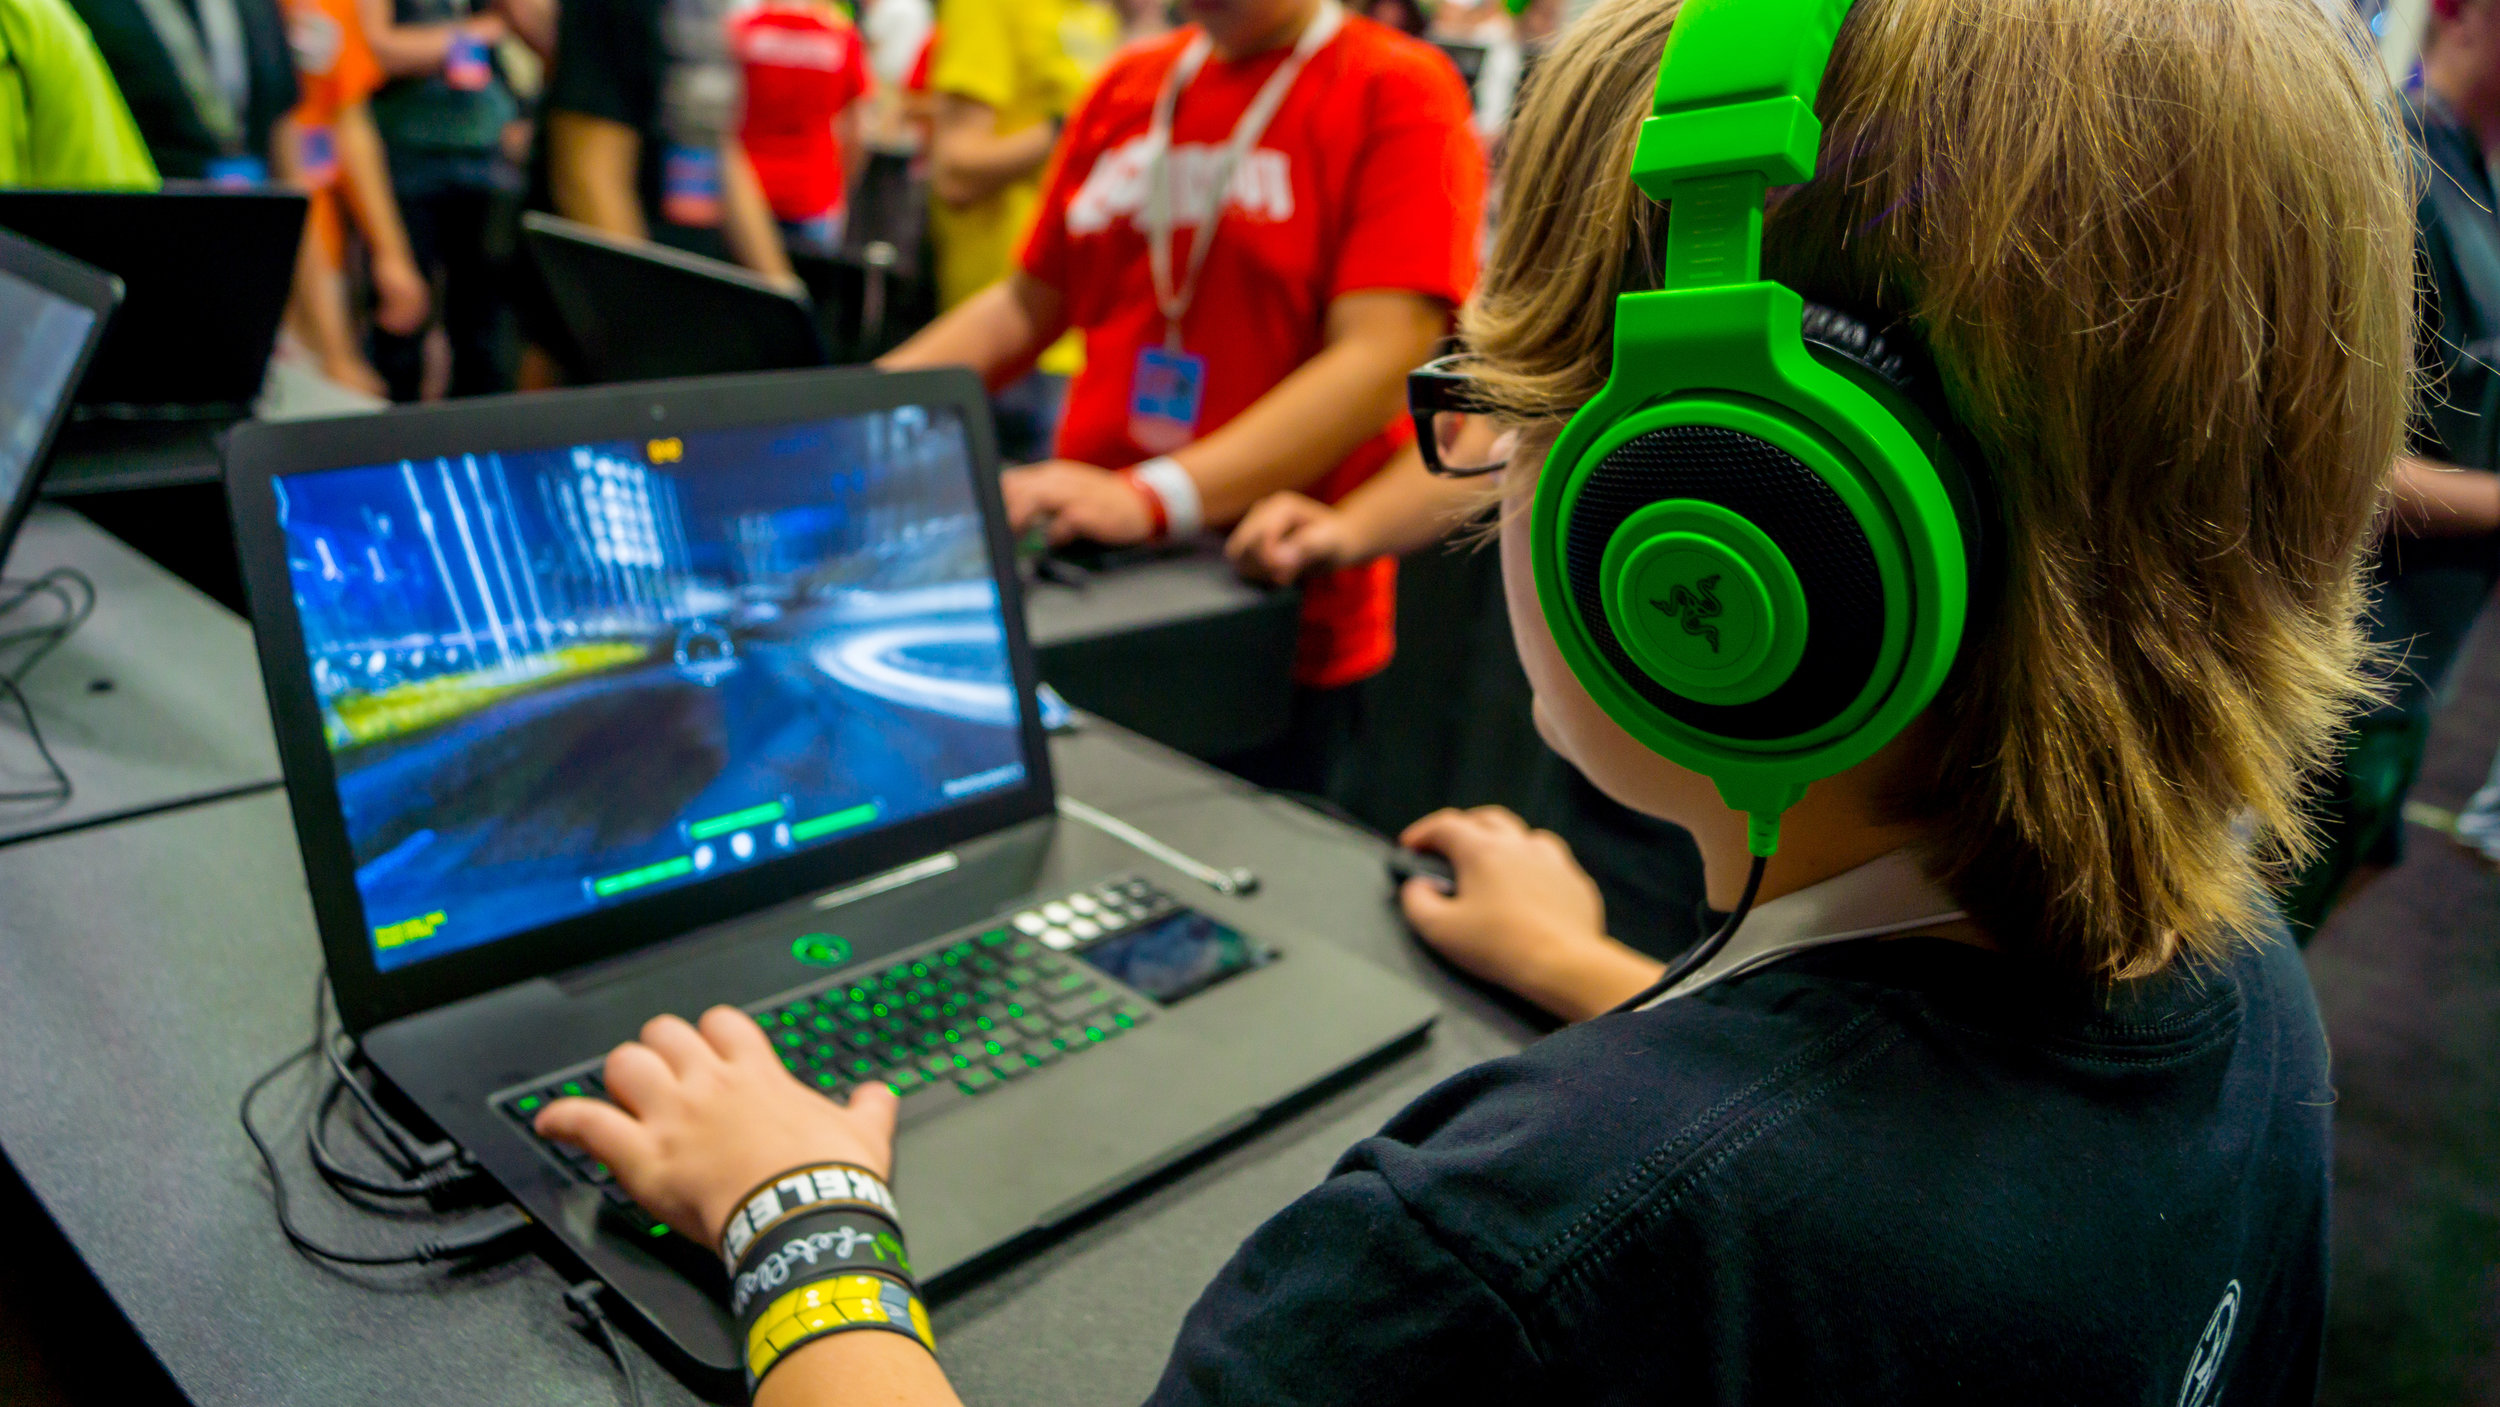 Razer Products in use at demo booth